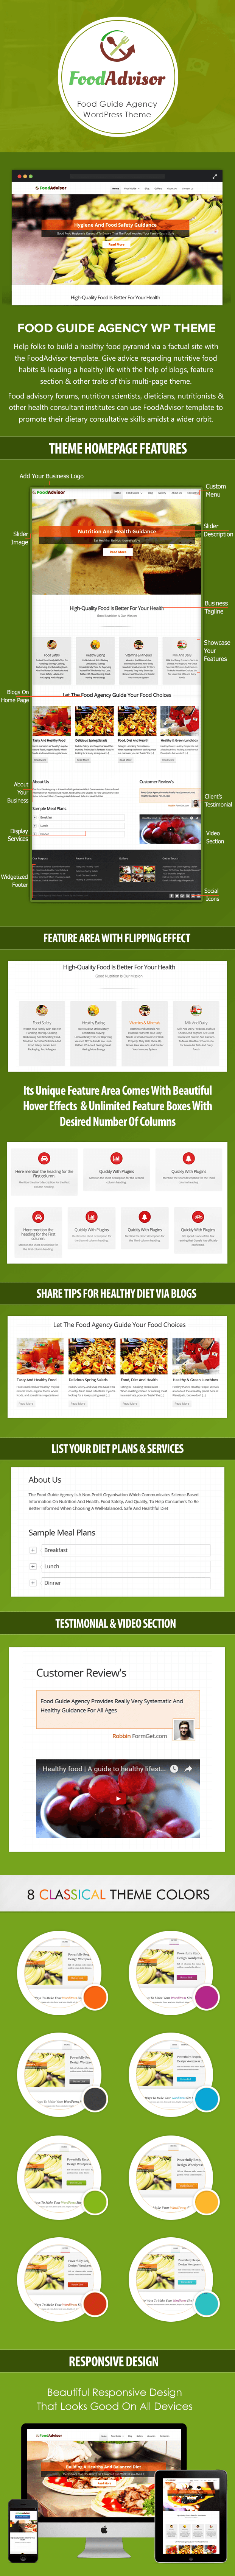 Food Guide Agency WordPress Theme Sales Page Image